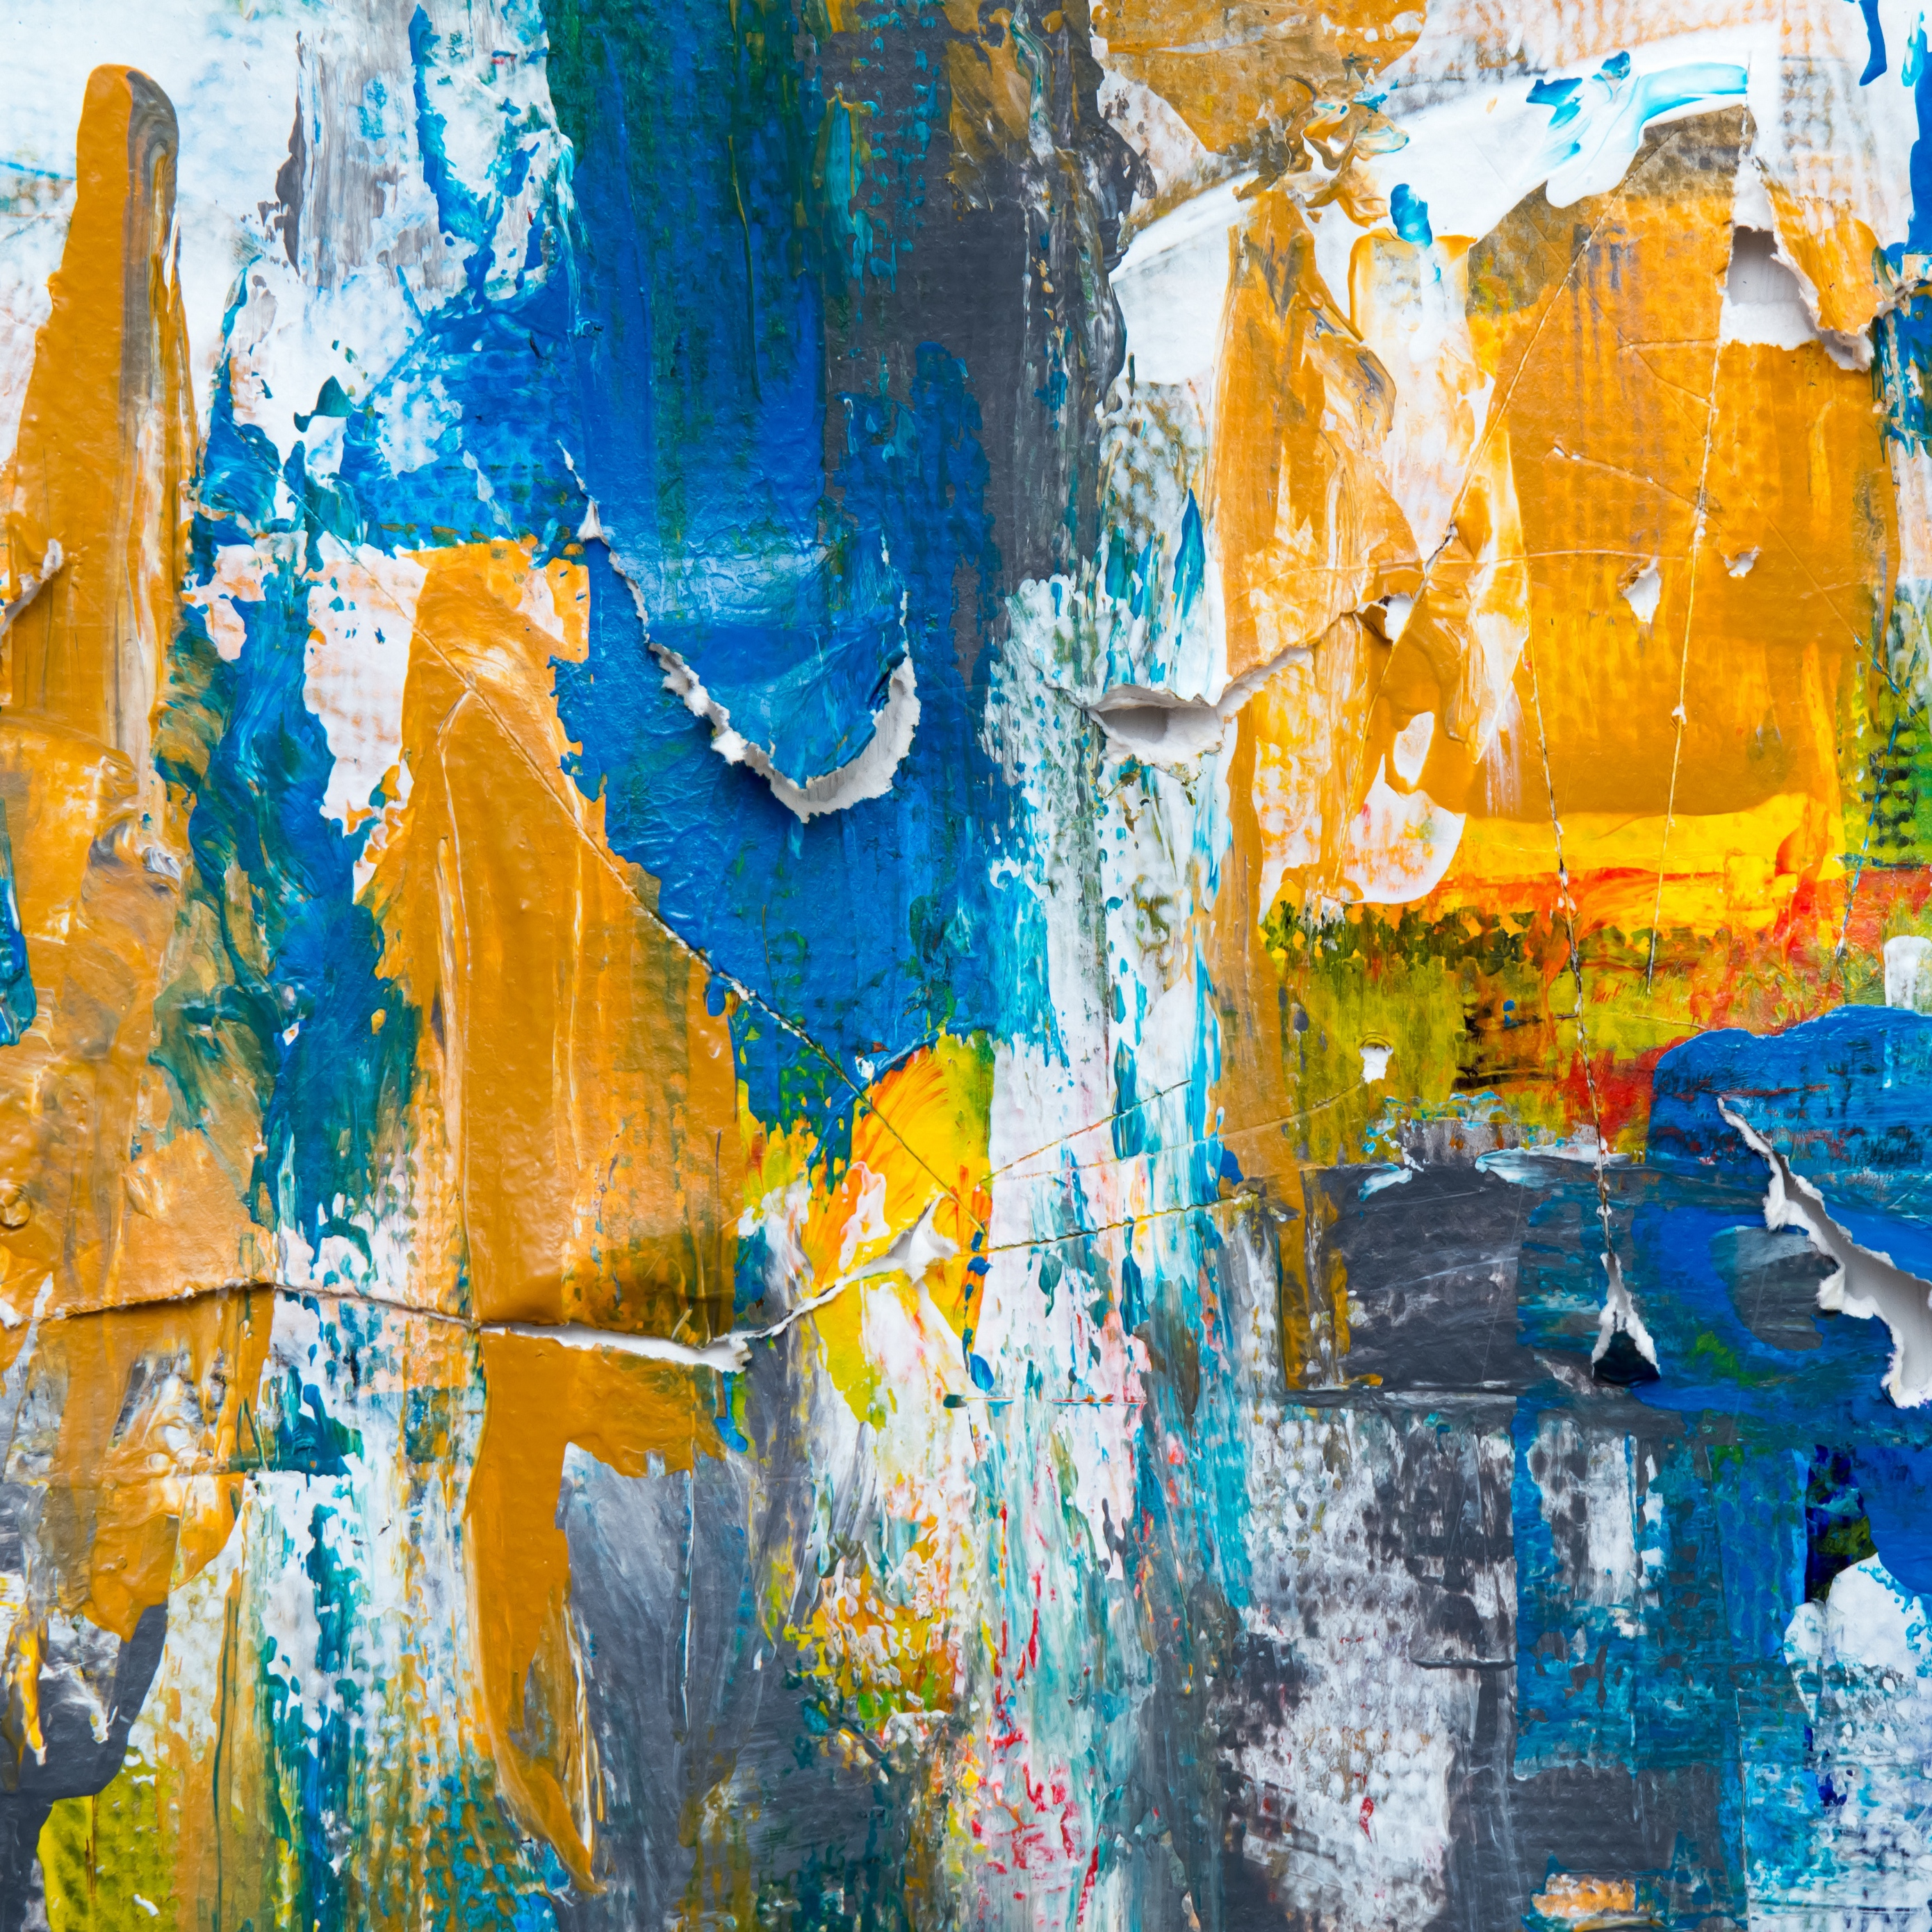 Wallpaper Canvas, Paint, Brush Strokes, Colorful, Abstract, - Paint Stroke Background Hd - HD Wallpaper